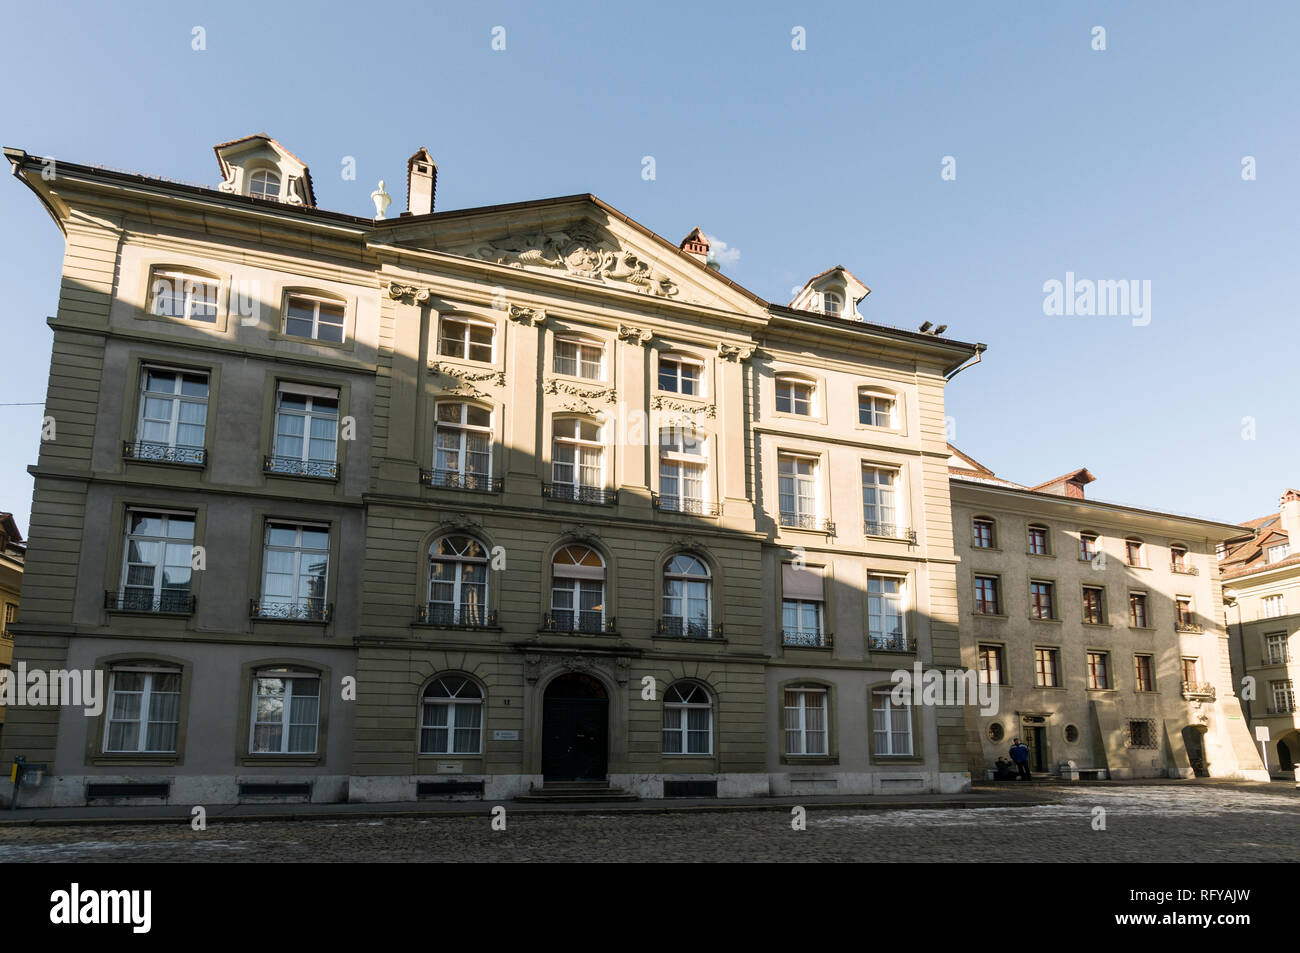 Swiss local Government department of the Finance for the Canton of Bern in Bern, Switzerland - Stock Image